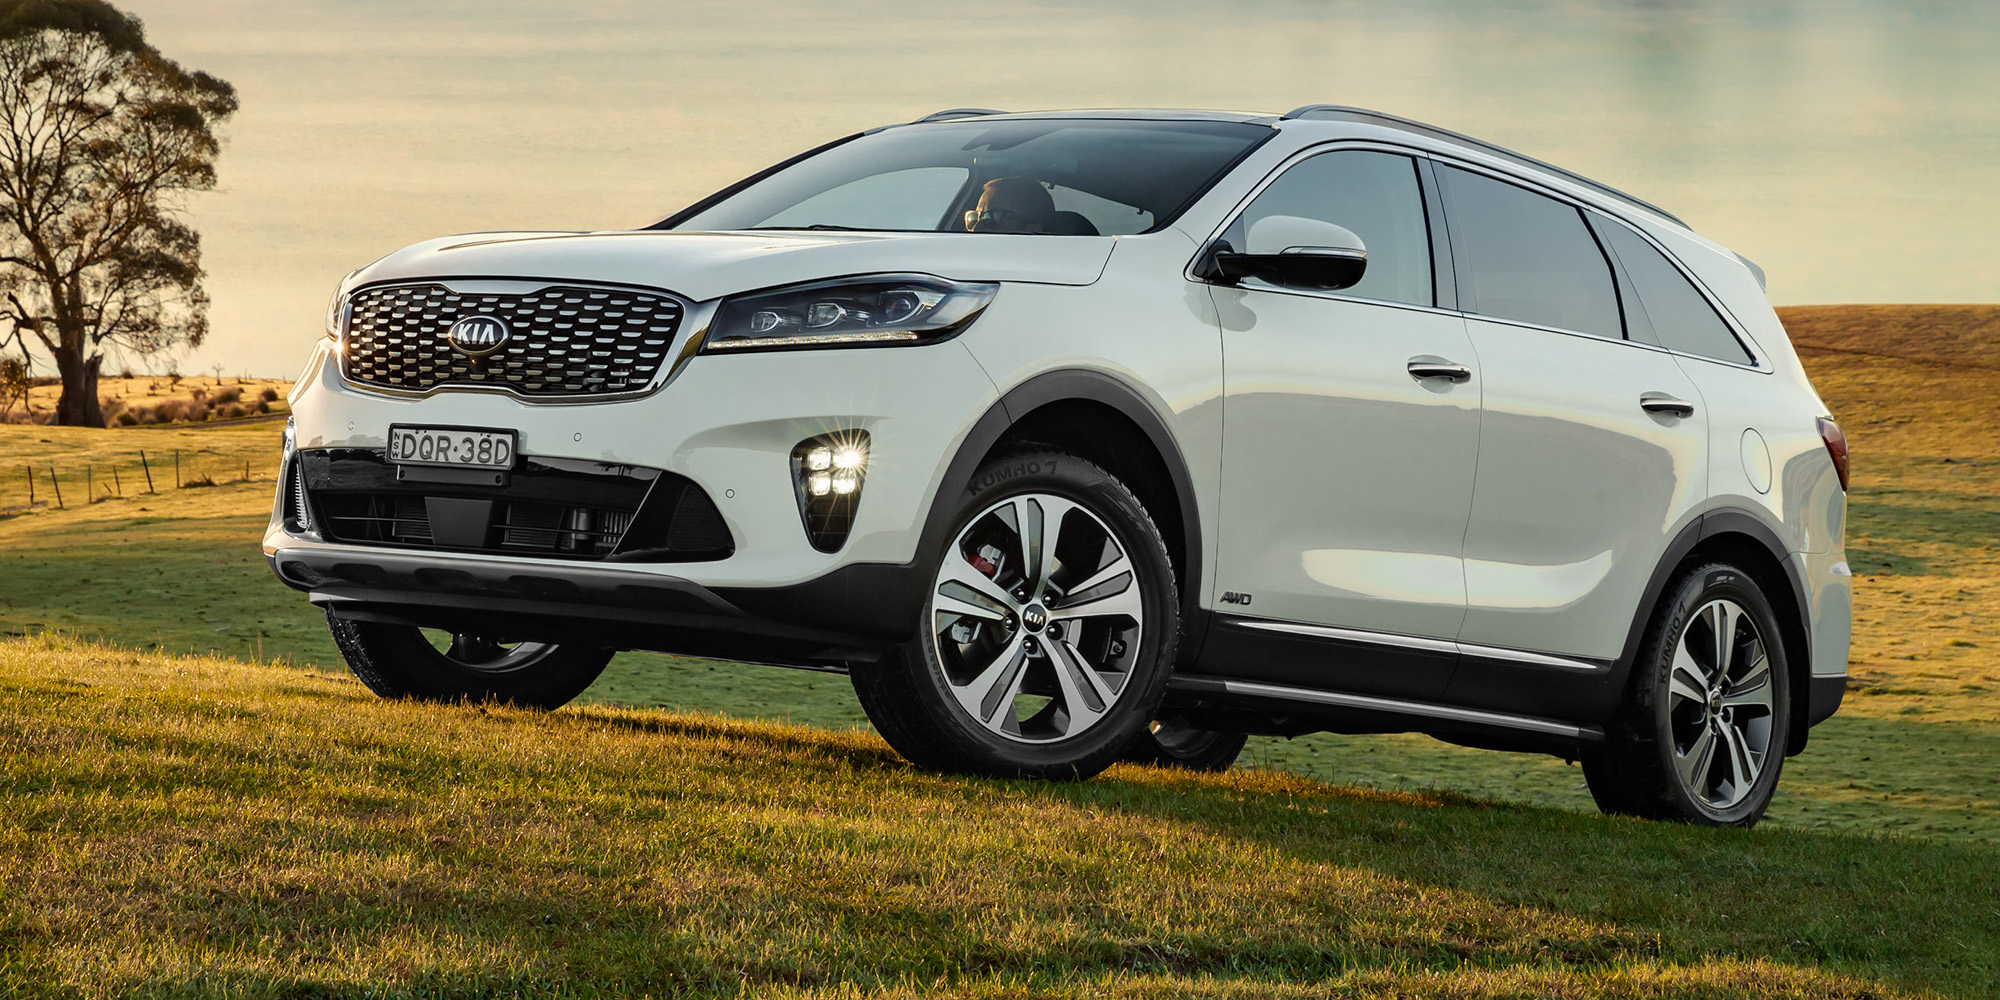 2018 Kia Sorento pricing and specs - Photos (1 of 23)